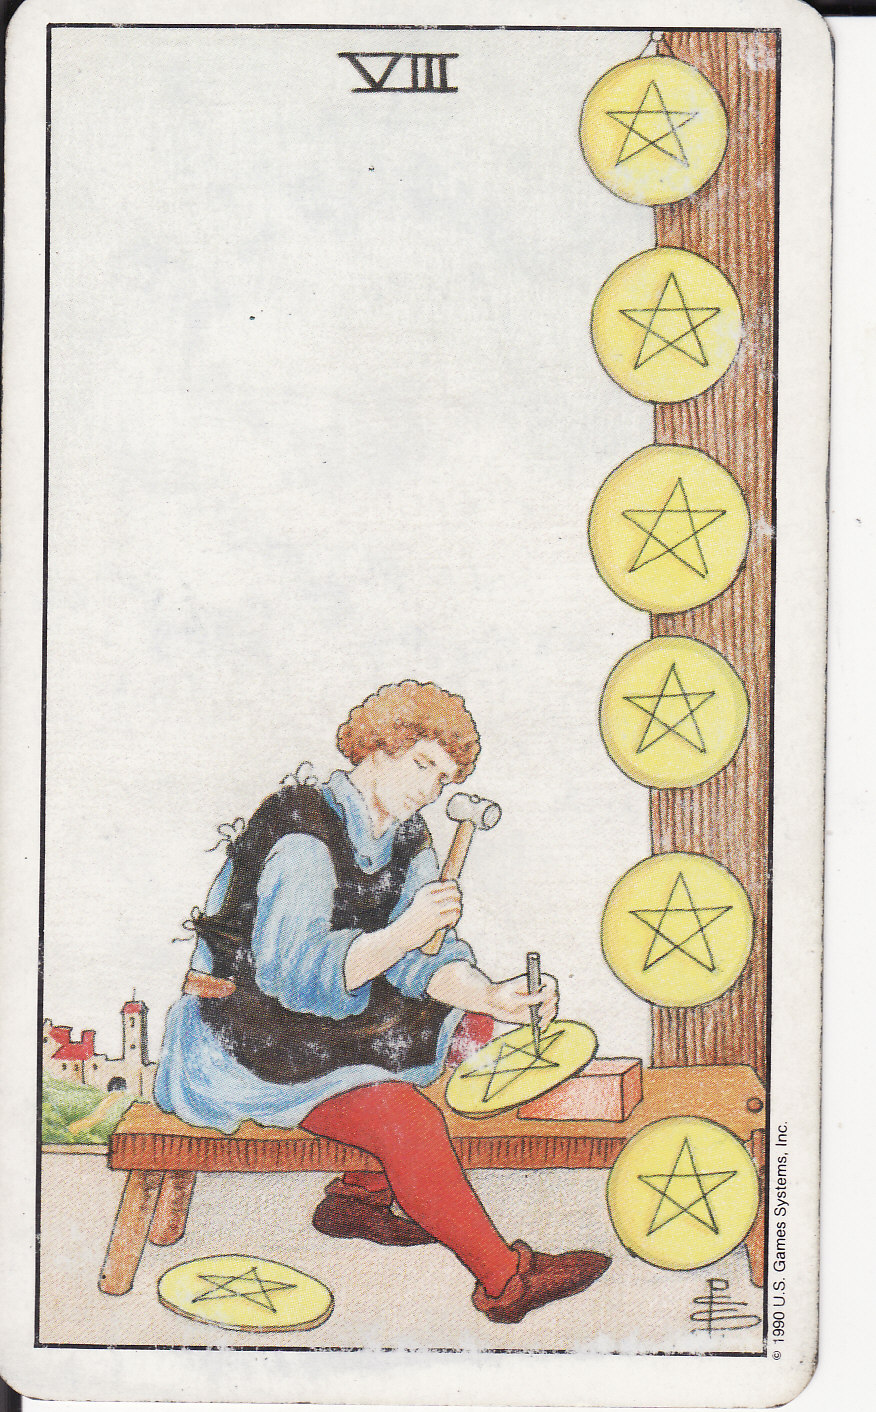 TAROT - The Royal Road: 8 EIGHT OF PENTACLES VIII